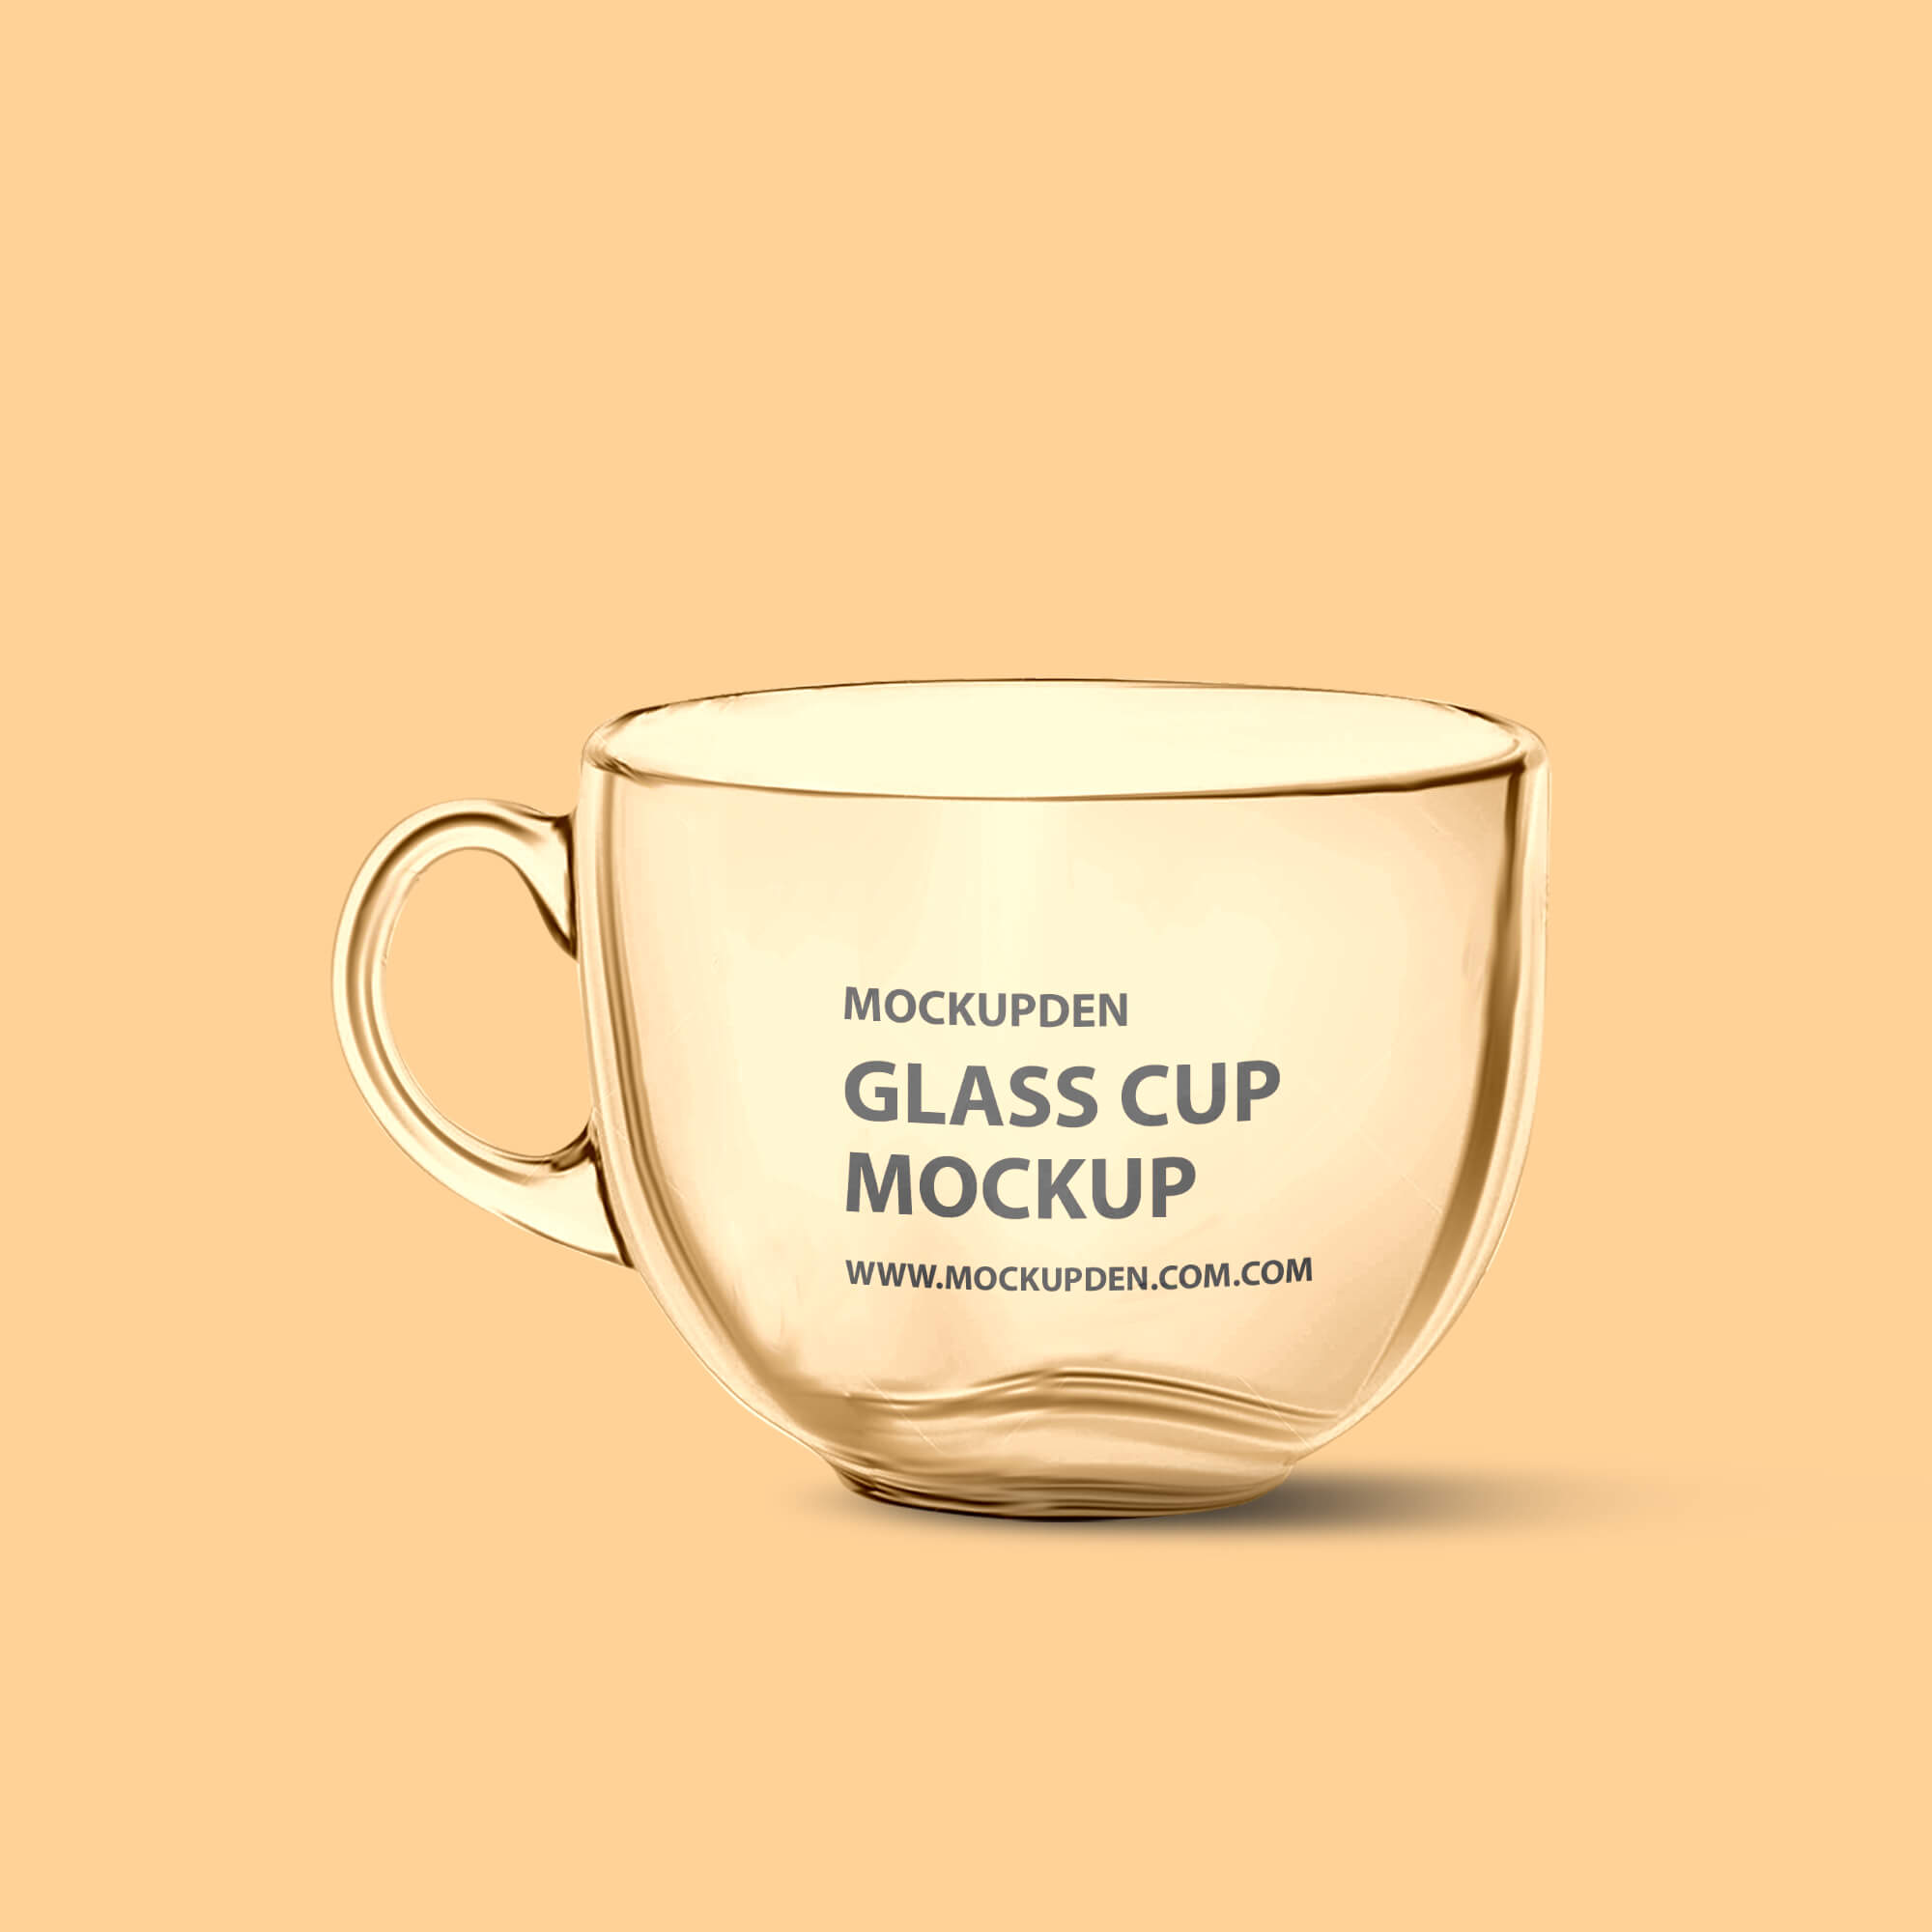 Design Free Glass Cup Mockup PSD Template